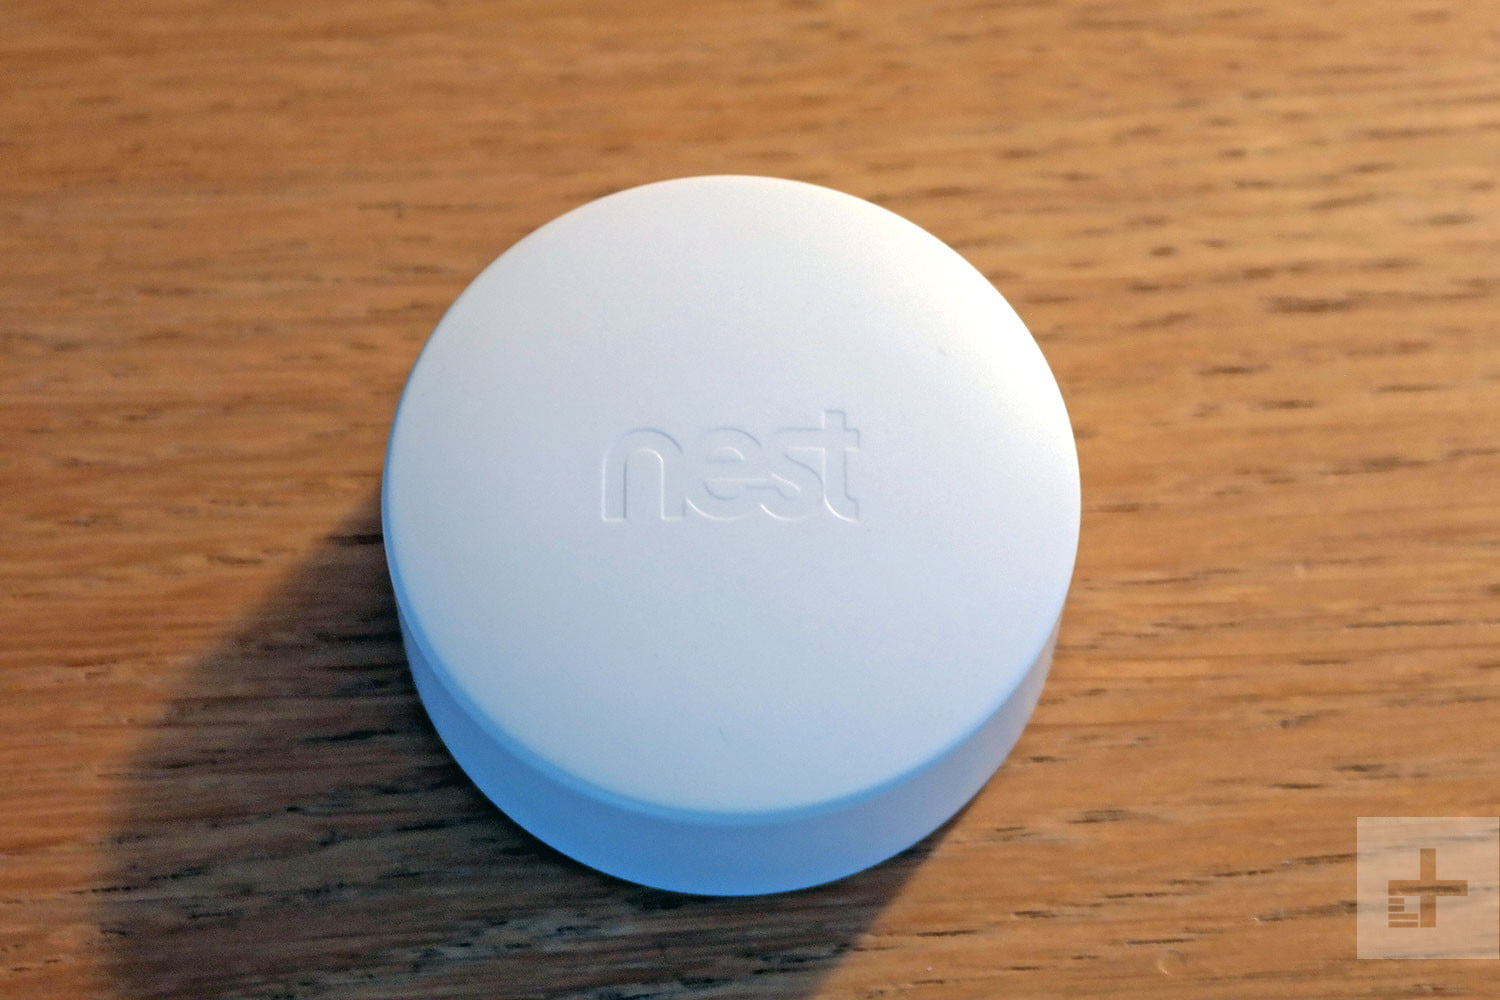 Ecobee Sensor Nest Temperature Sensor Review Digital Trends